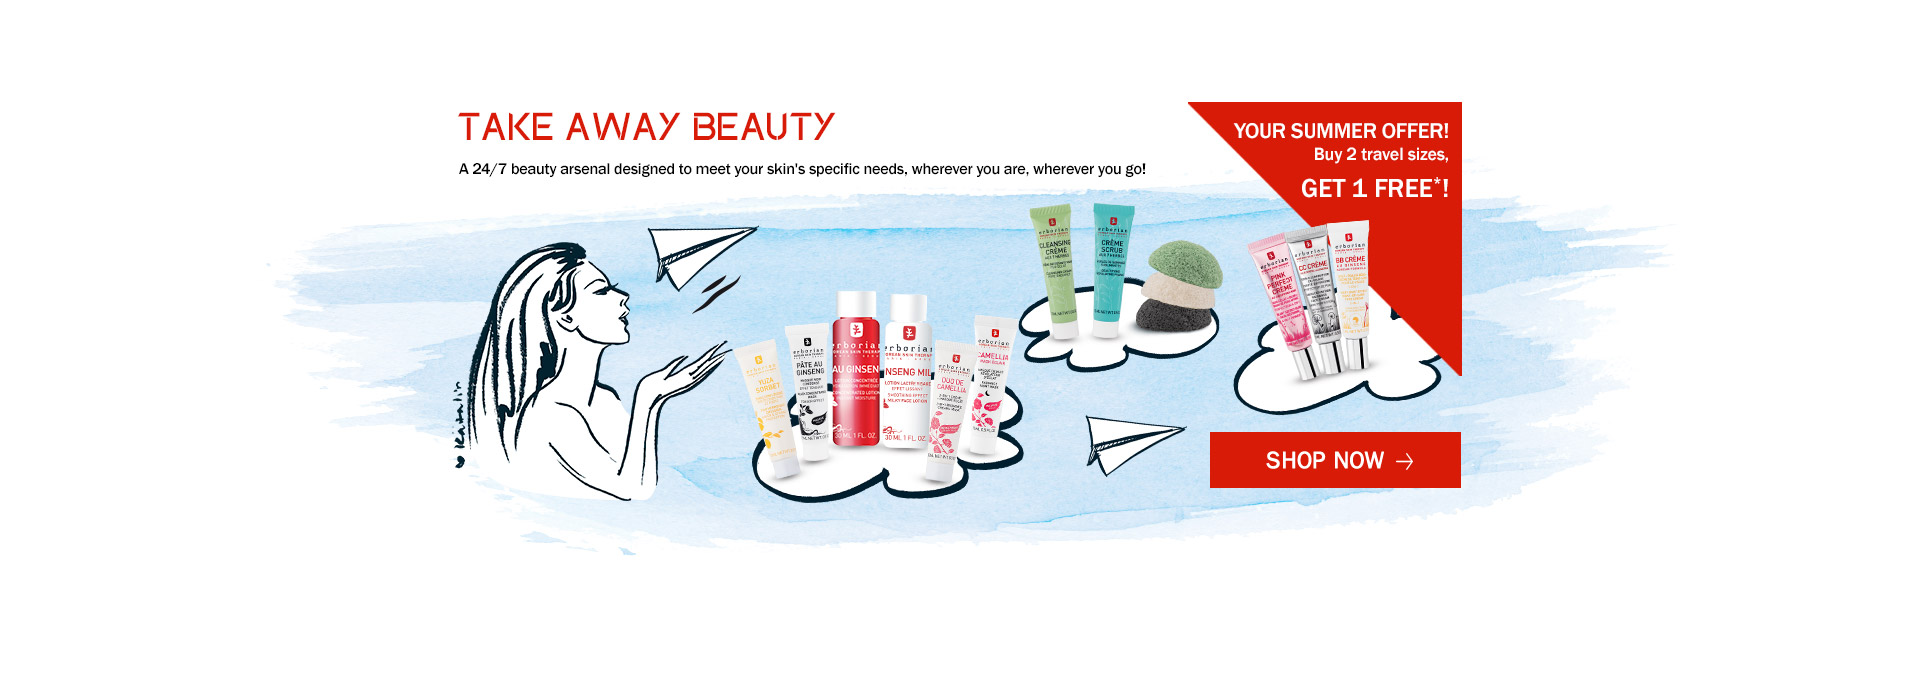 Take Away Beauty. Choose your essentials for holidays with these travel sizes